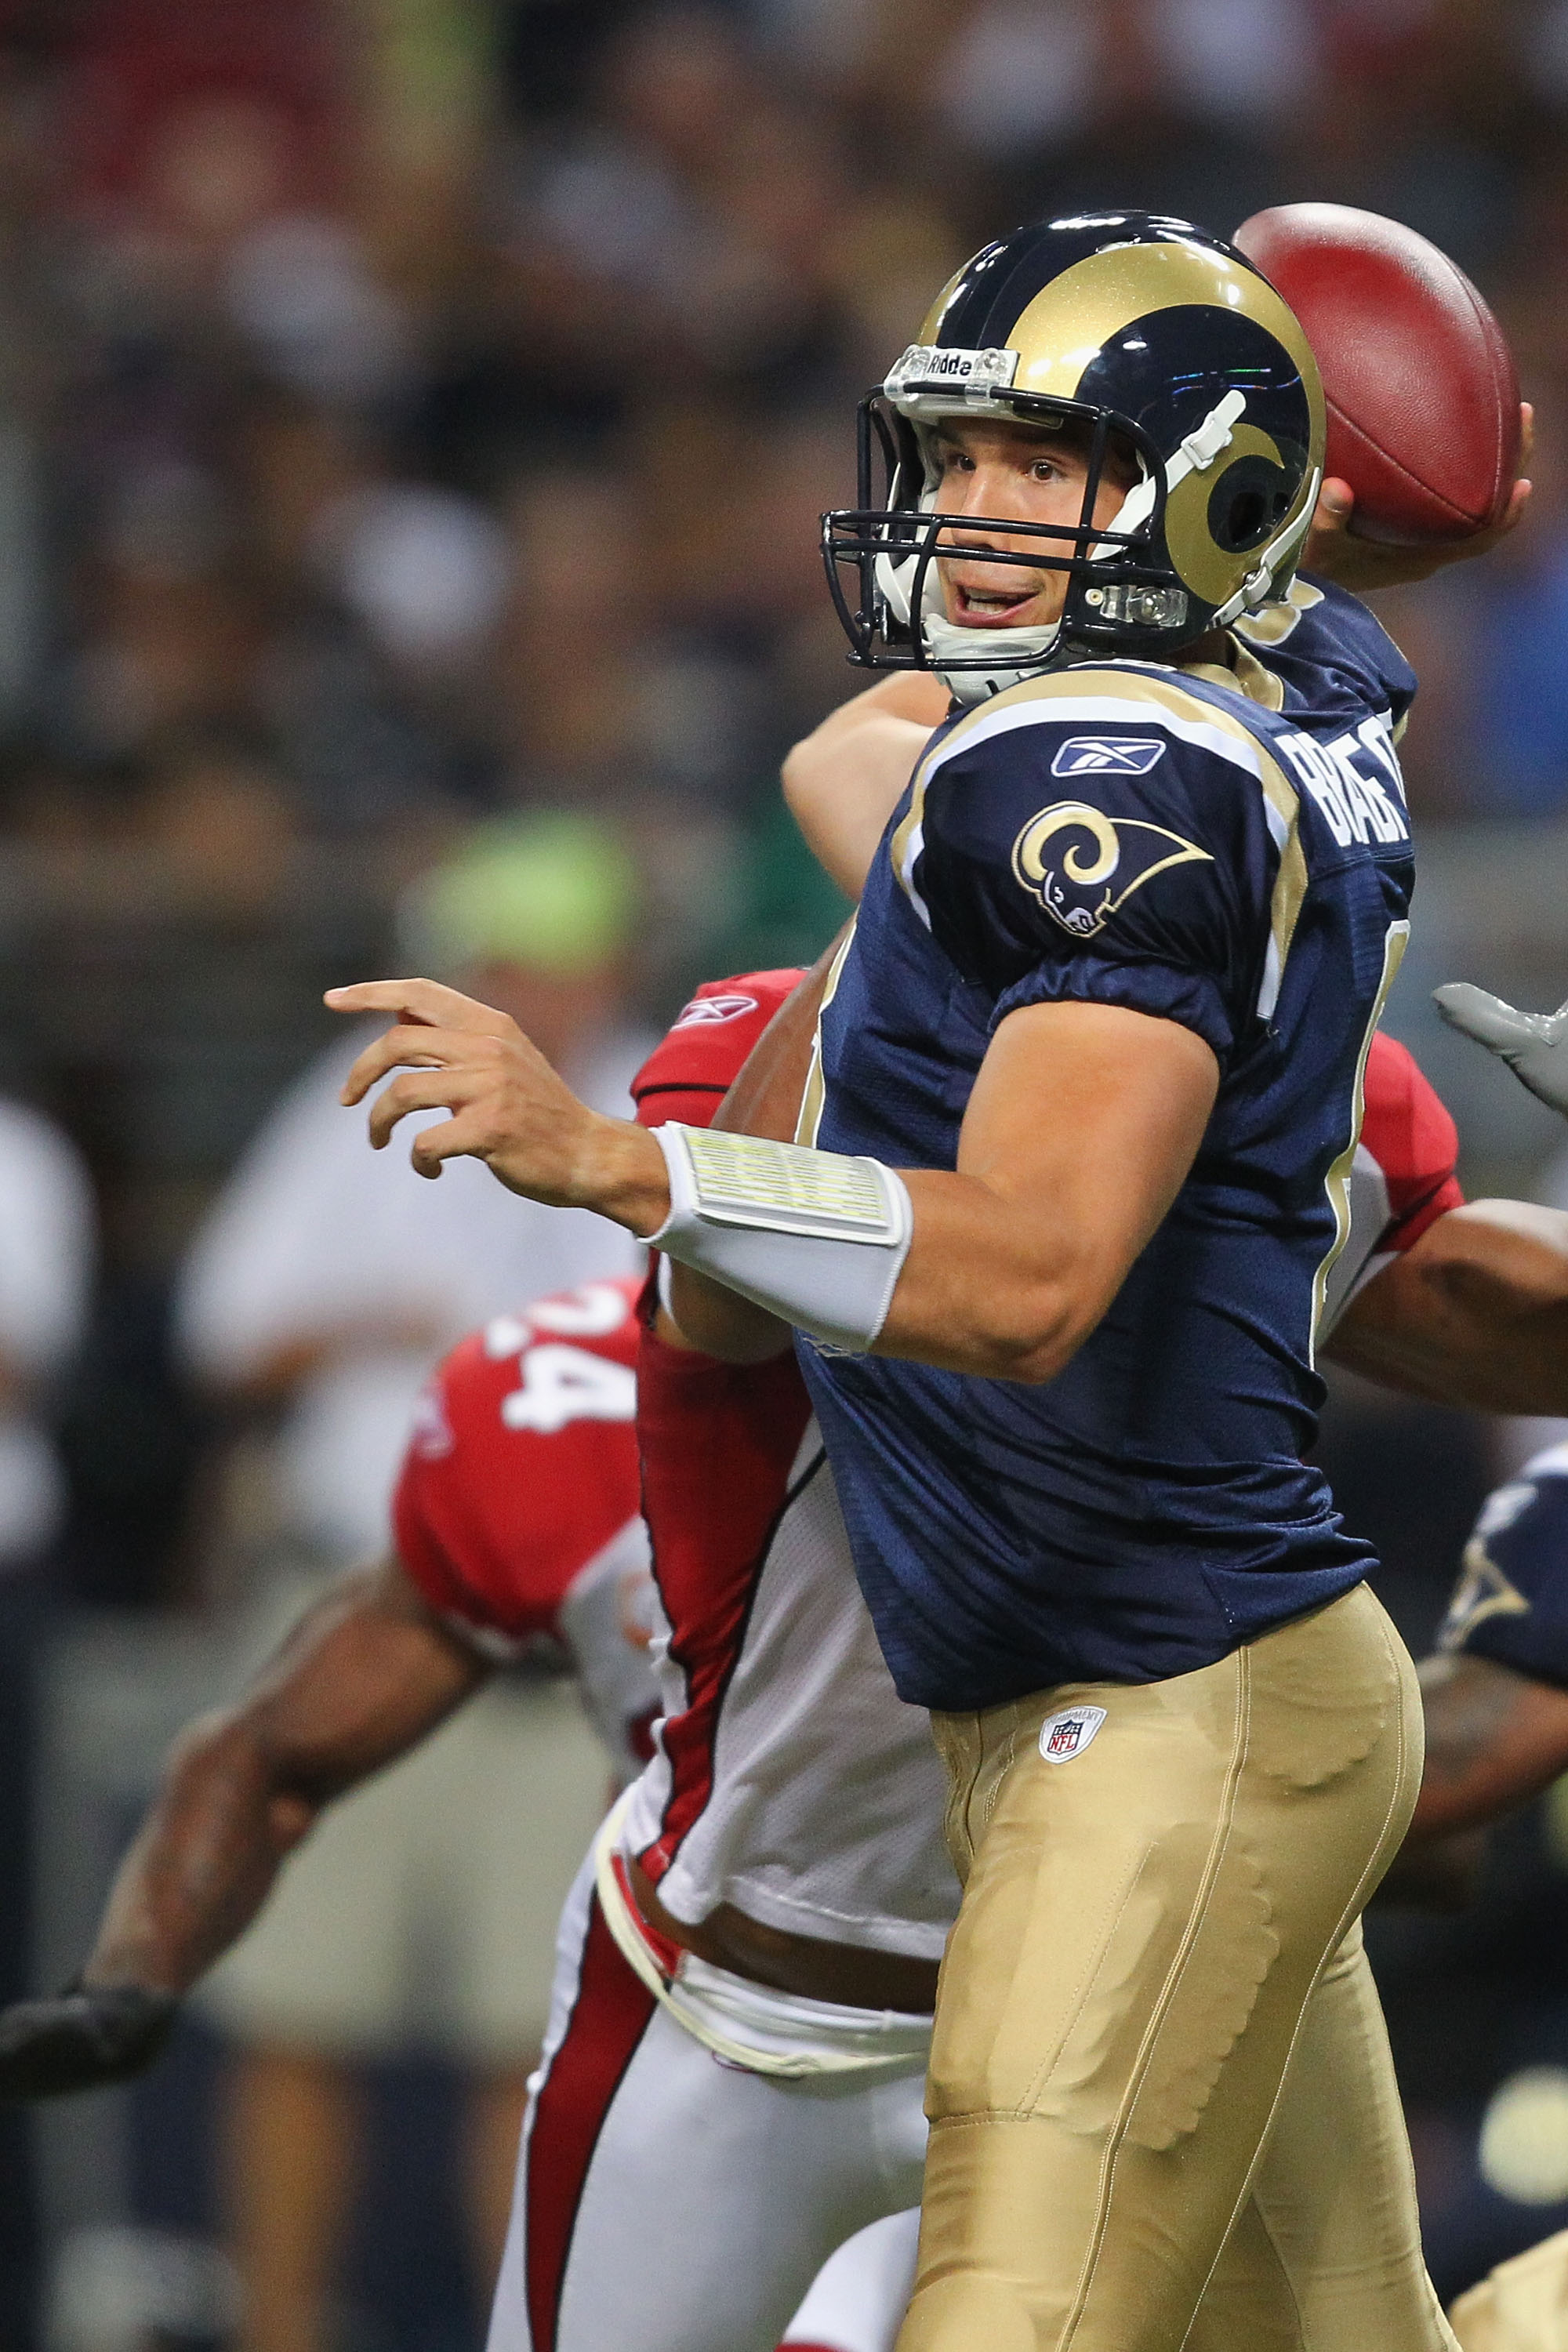 ST. LOUIS - SEPTEMBER 12: Sam Bradford #8 of the St. Louis Rams passes against the Arizona Cardinals during the NFL season opener at the Edward Jones Dome on September 12, 2010 in St. Louis, Missouri.  The Cardinals beat the Rams 17-13.  (Photo by Dilip V